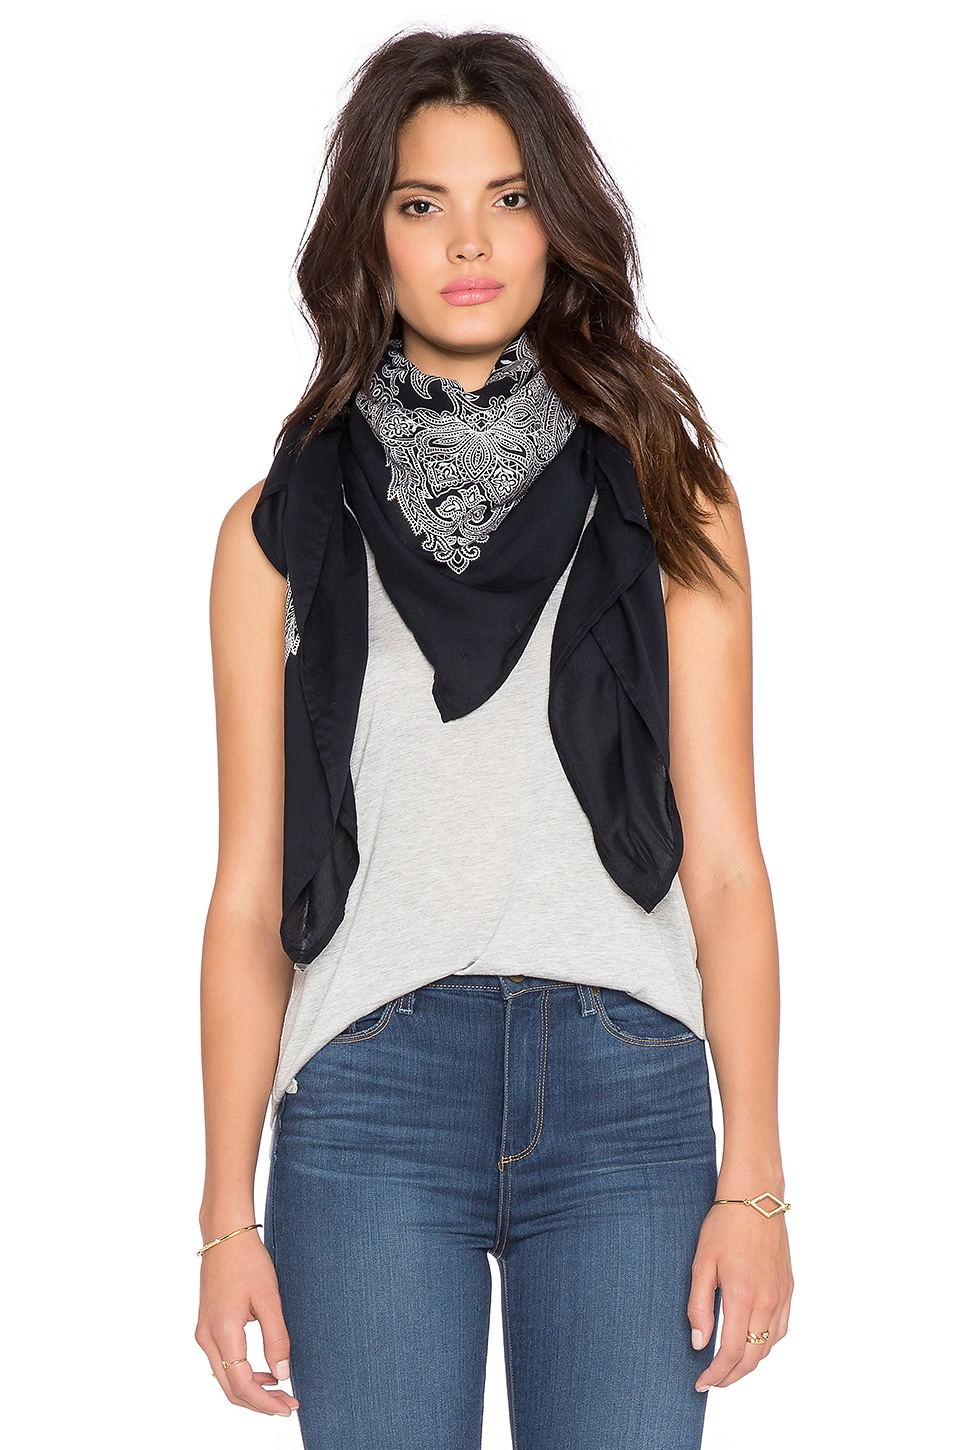 Maison Scotch Bandana Scarf in Navy